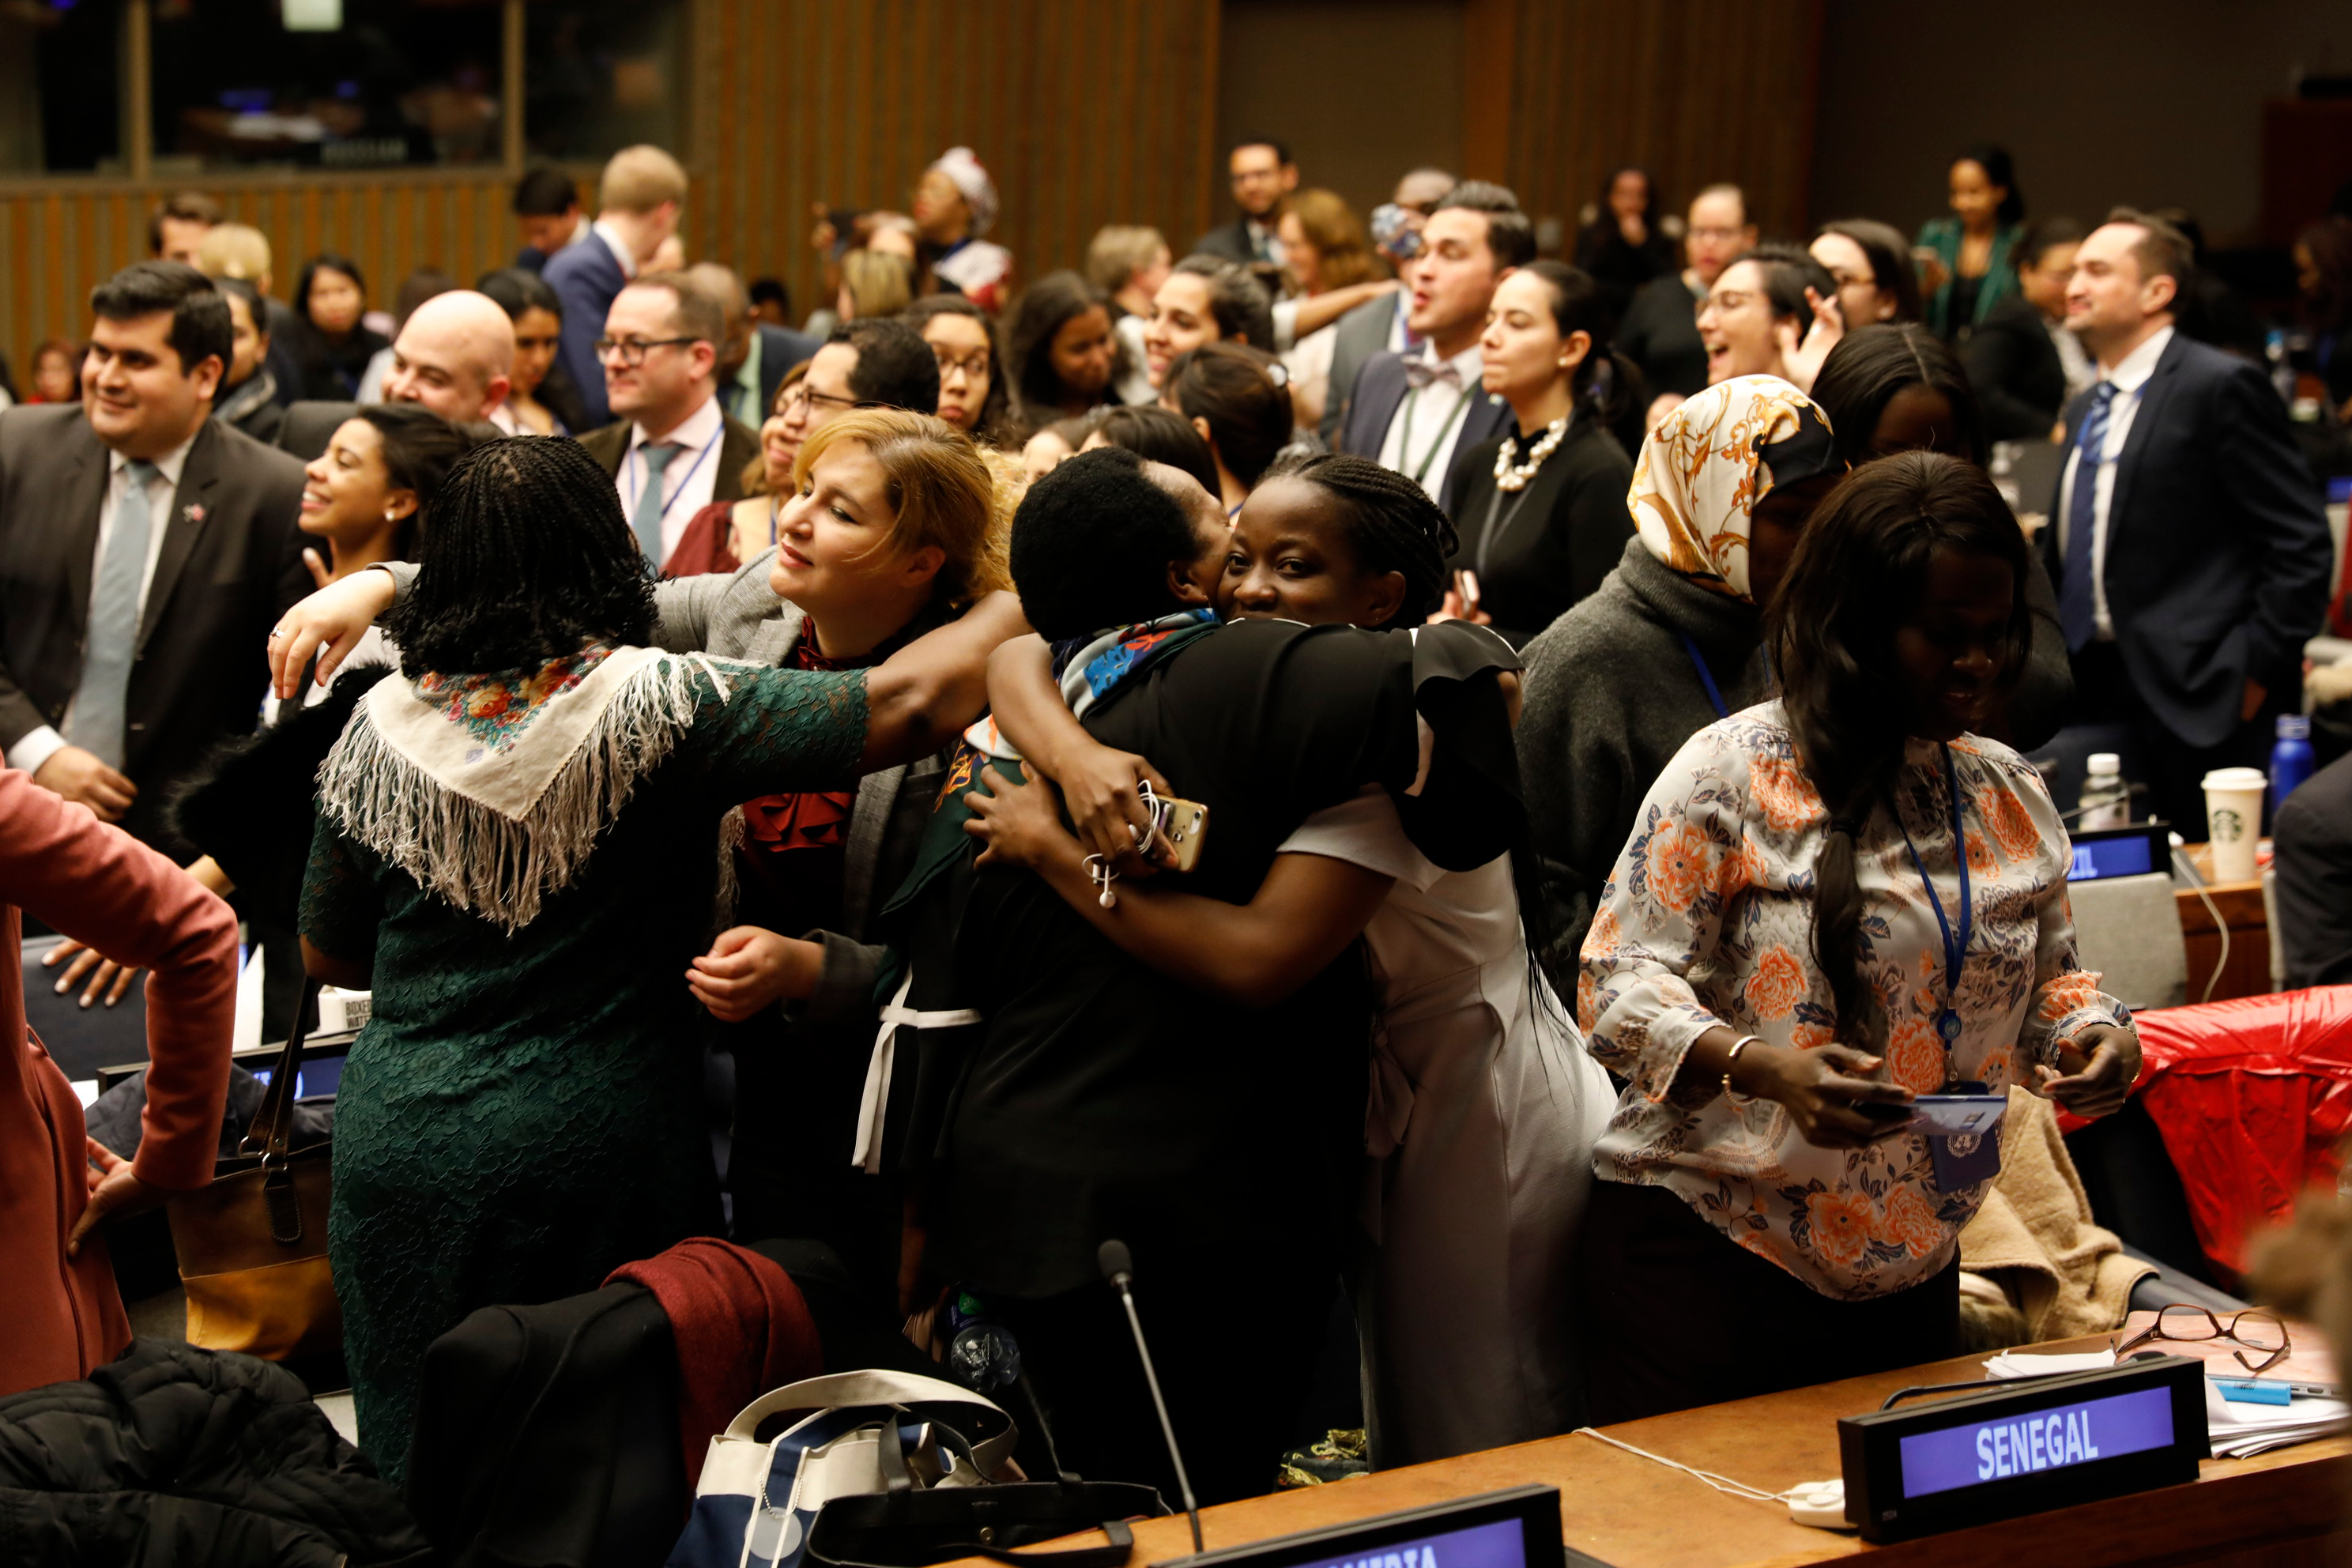 Participants rejoice as the 63rd session of the UN Commission on the Status of Women adopts Agreed Conclusions that delivers road map on ensuring women's social protection, mobility, safety, and access to economic opportunities. Photo: UN Women/Ryan Brown